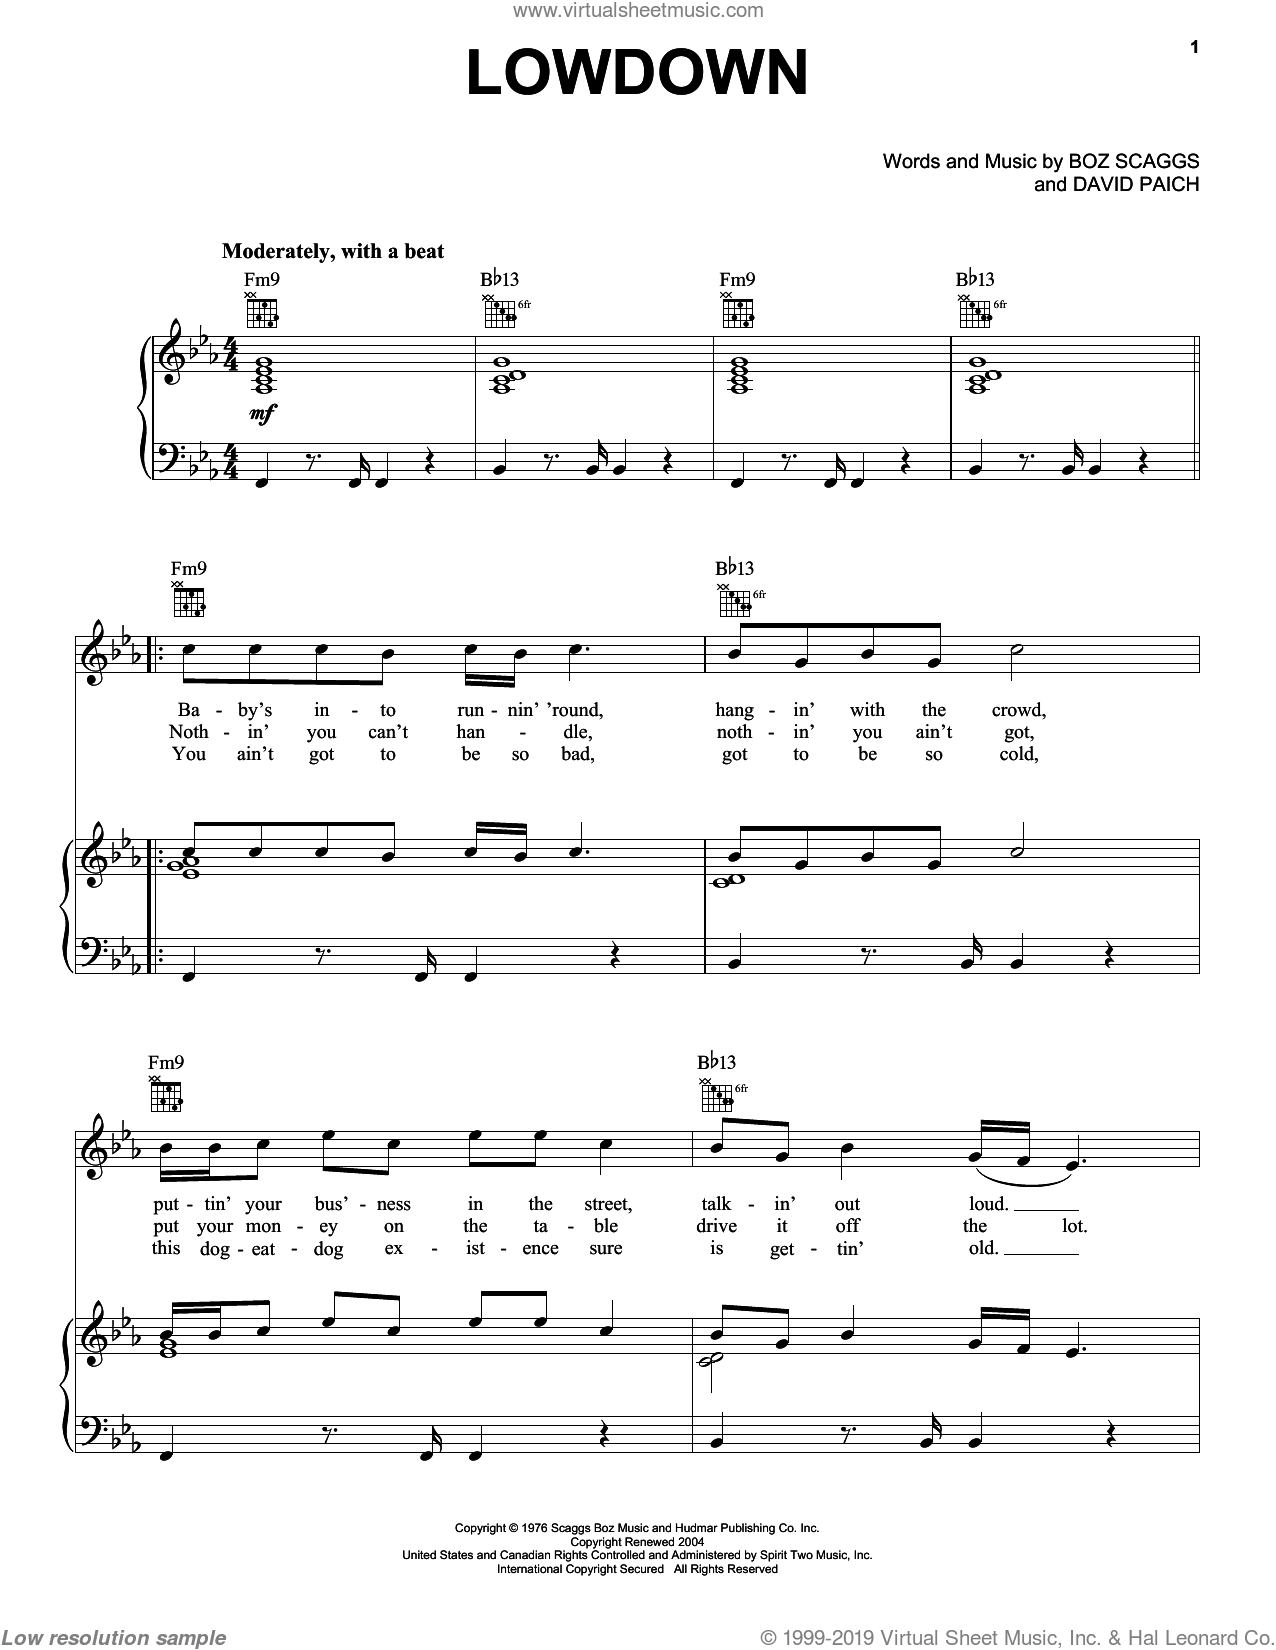 Lowdown sheet music for voice, piano or guitar by David Paich